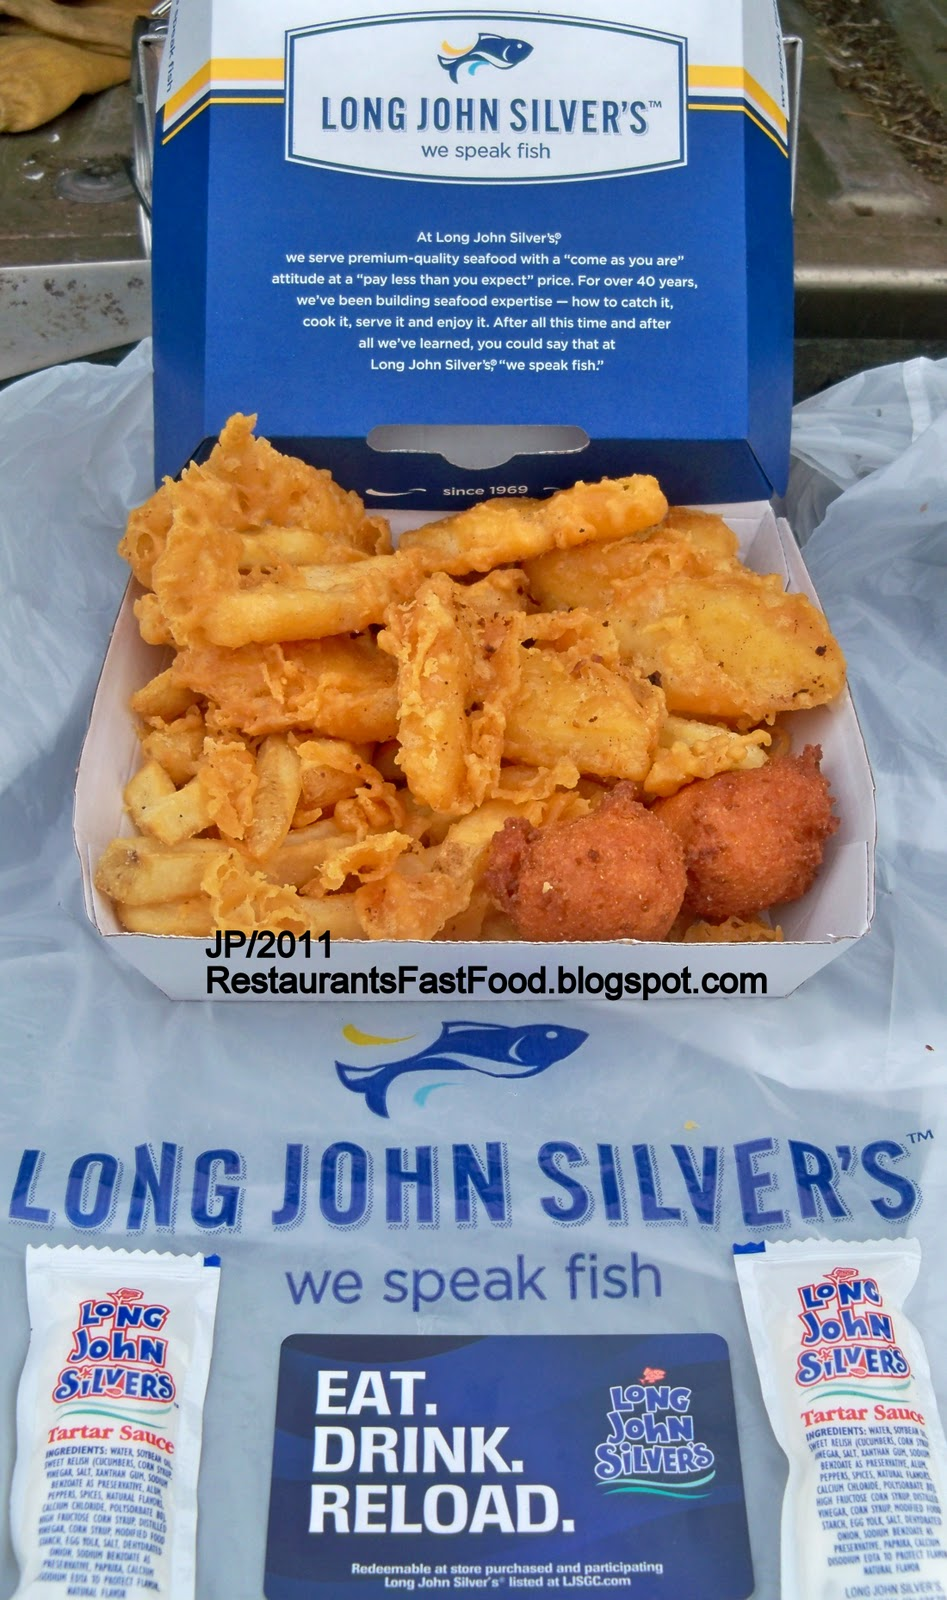 Warner robins georgia air force base houston restaurant for Long john silvers fish